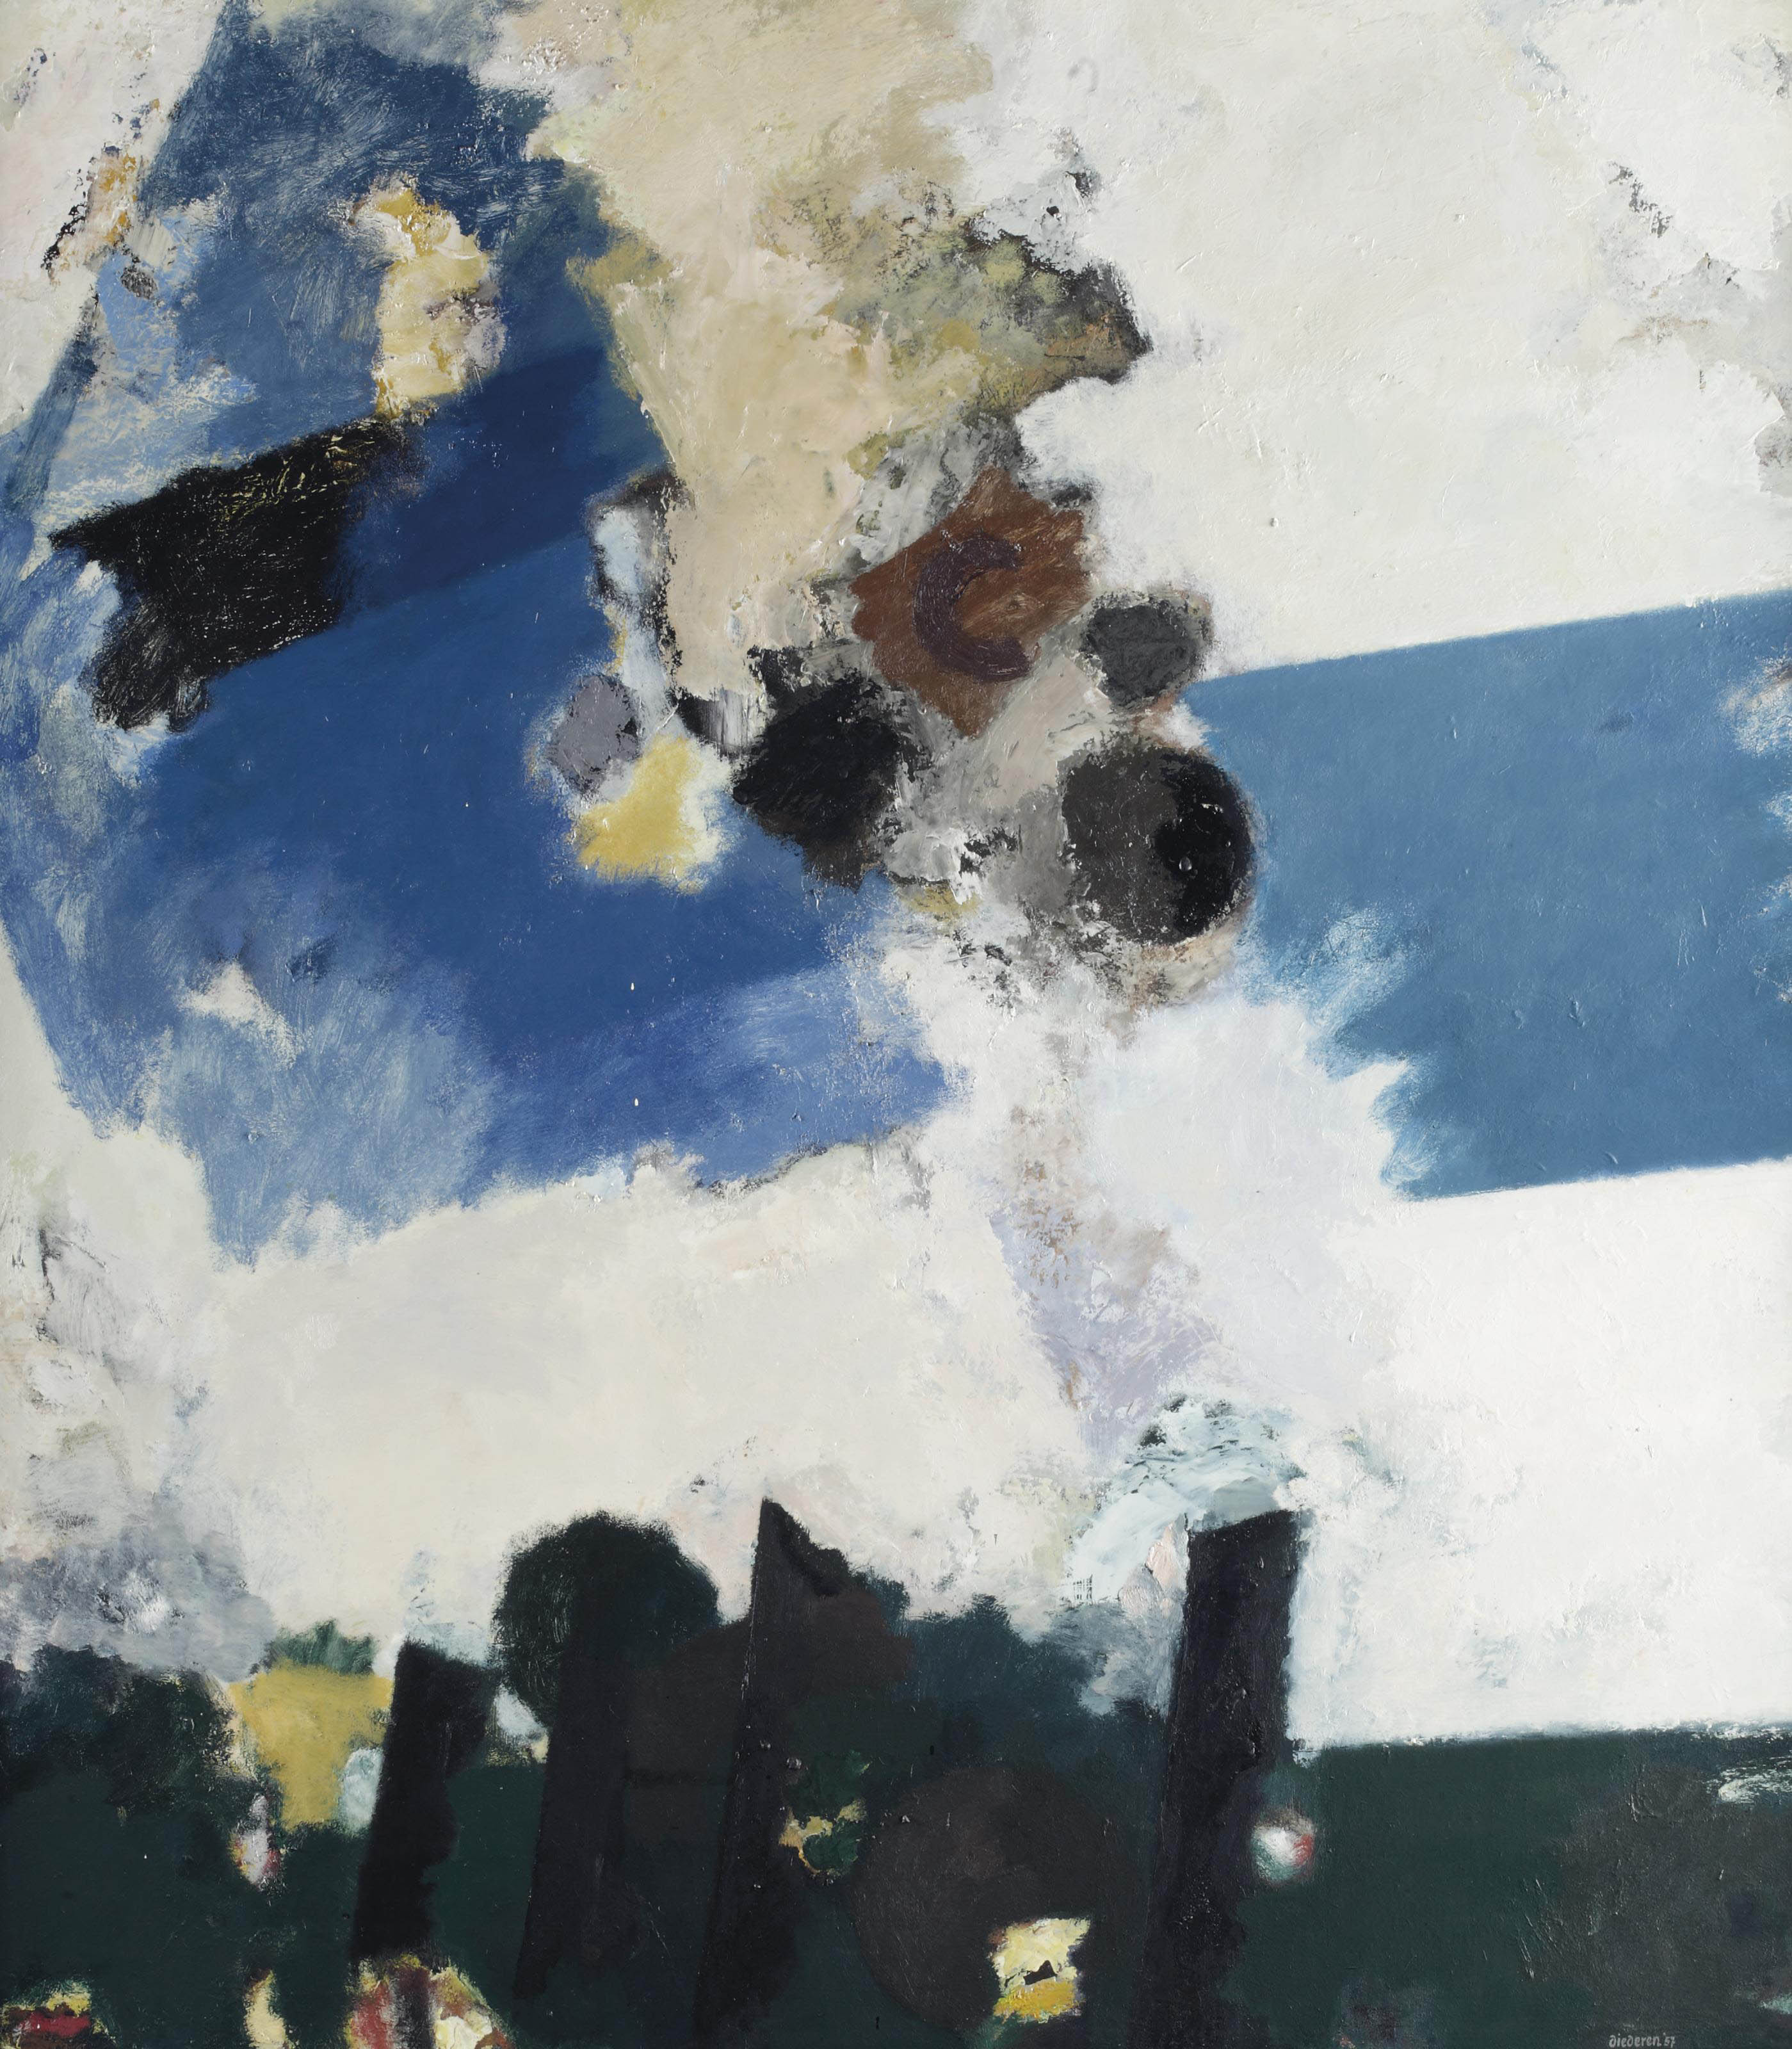 Composition in white, blue and black